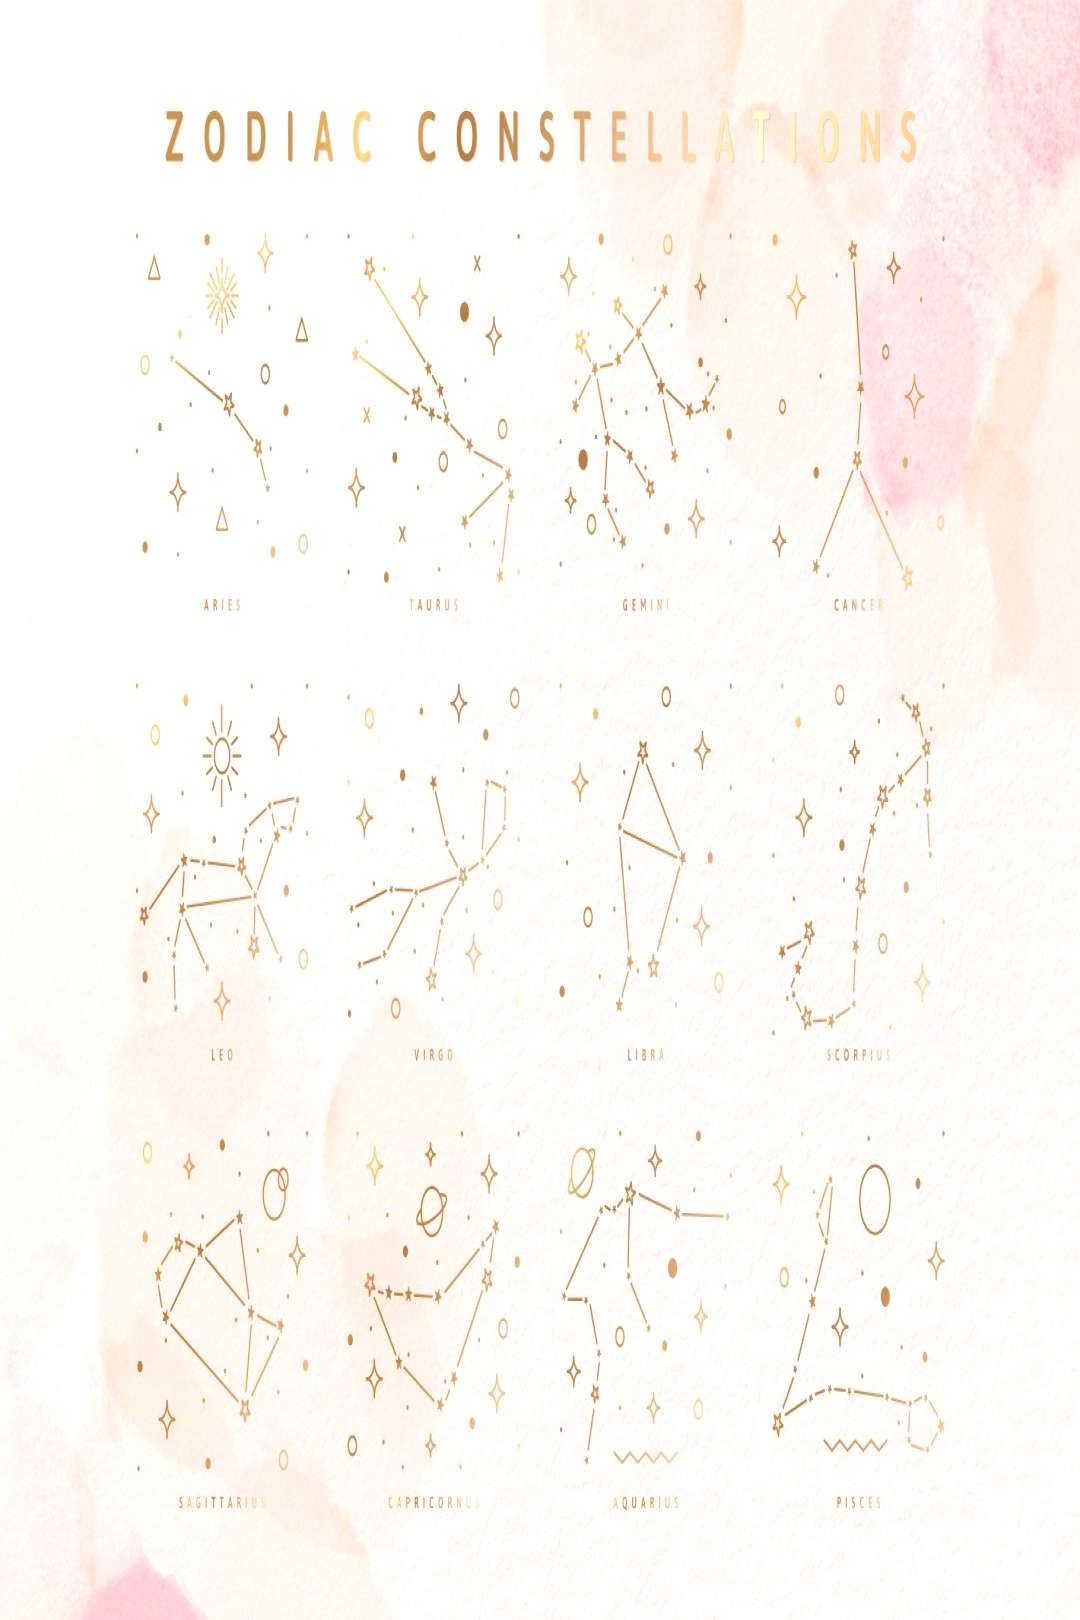 Zodiac signs and constellations by Pixejoo on Creative Market , Zodiac signs and constellations by